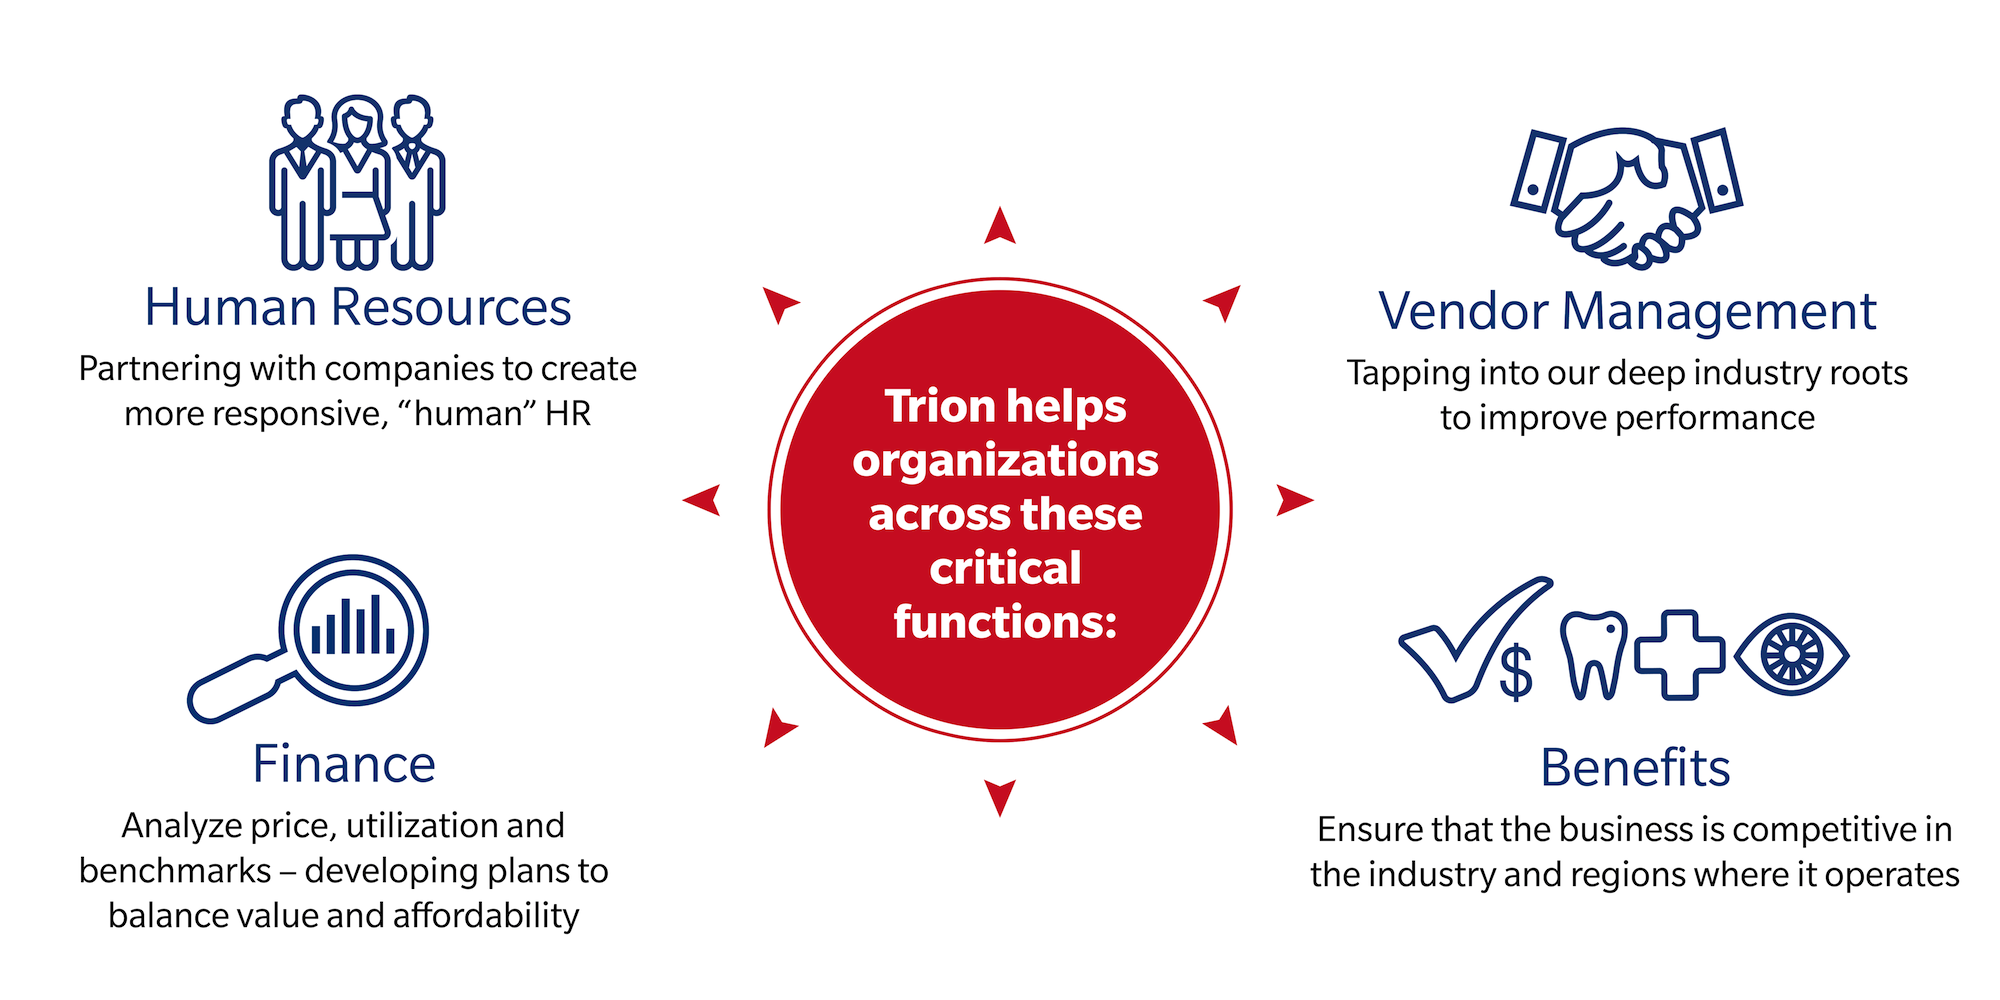 image describing how Trion helps organizations